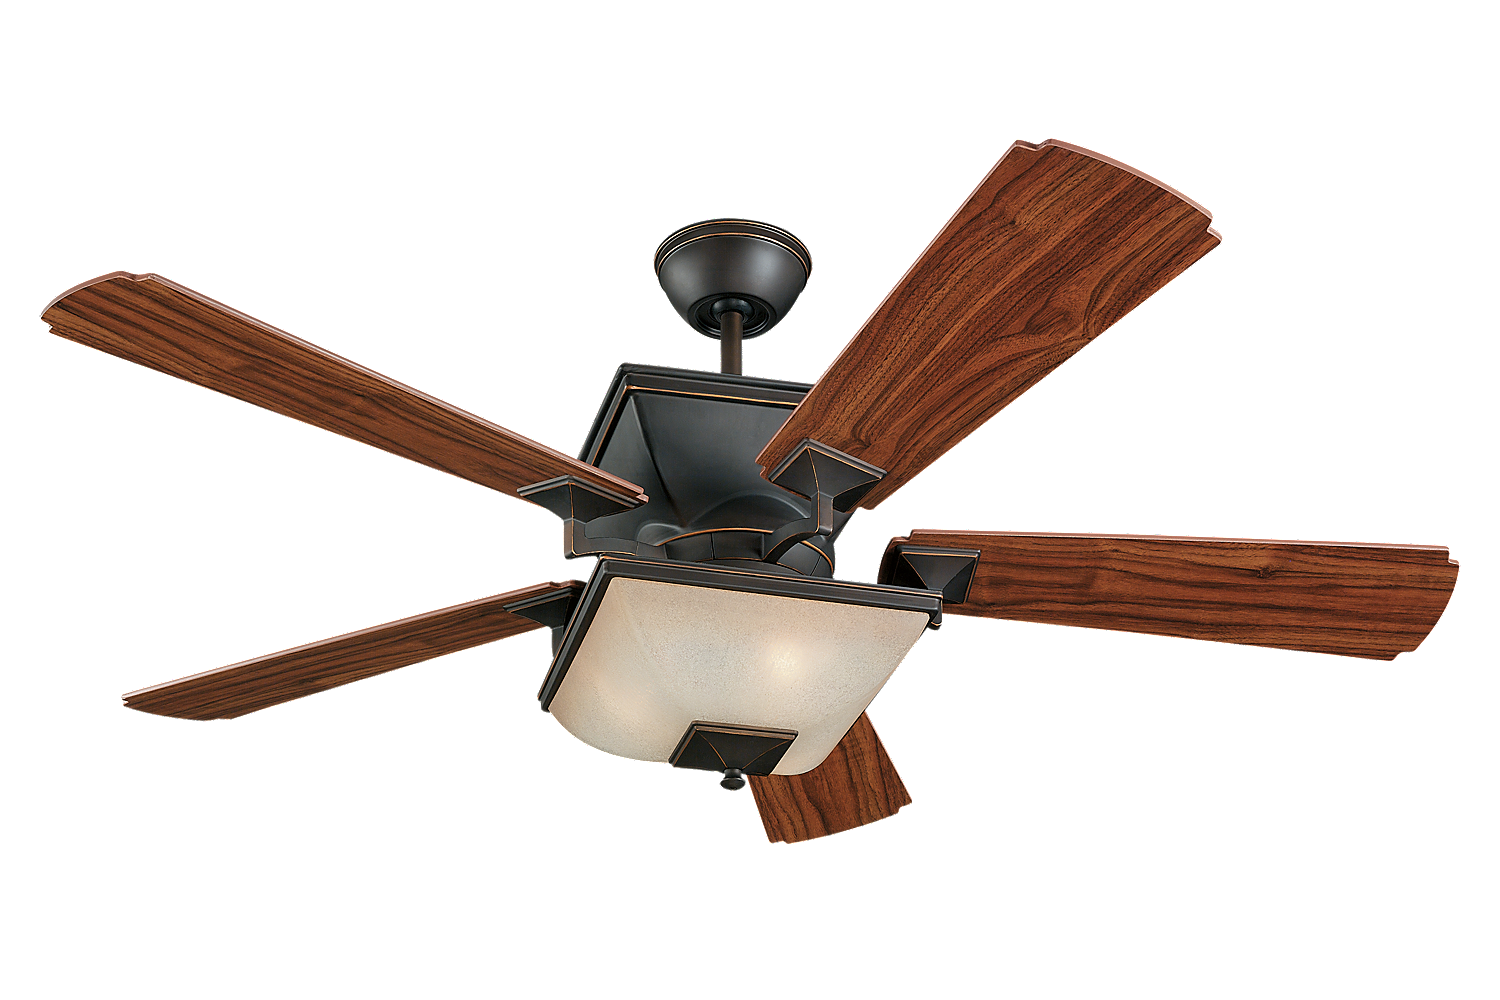 Town ceiling fan with light by monte carlo 5tq52rbd l - Japanese paddle fan ...